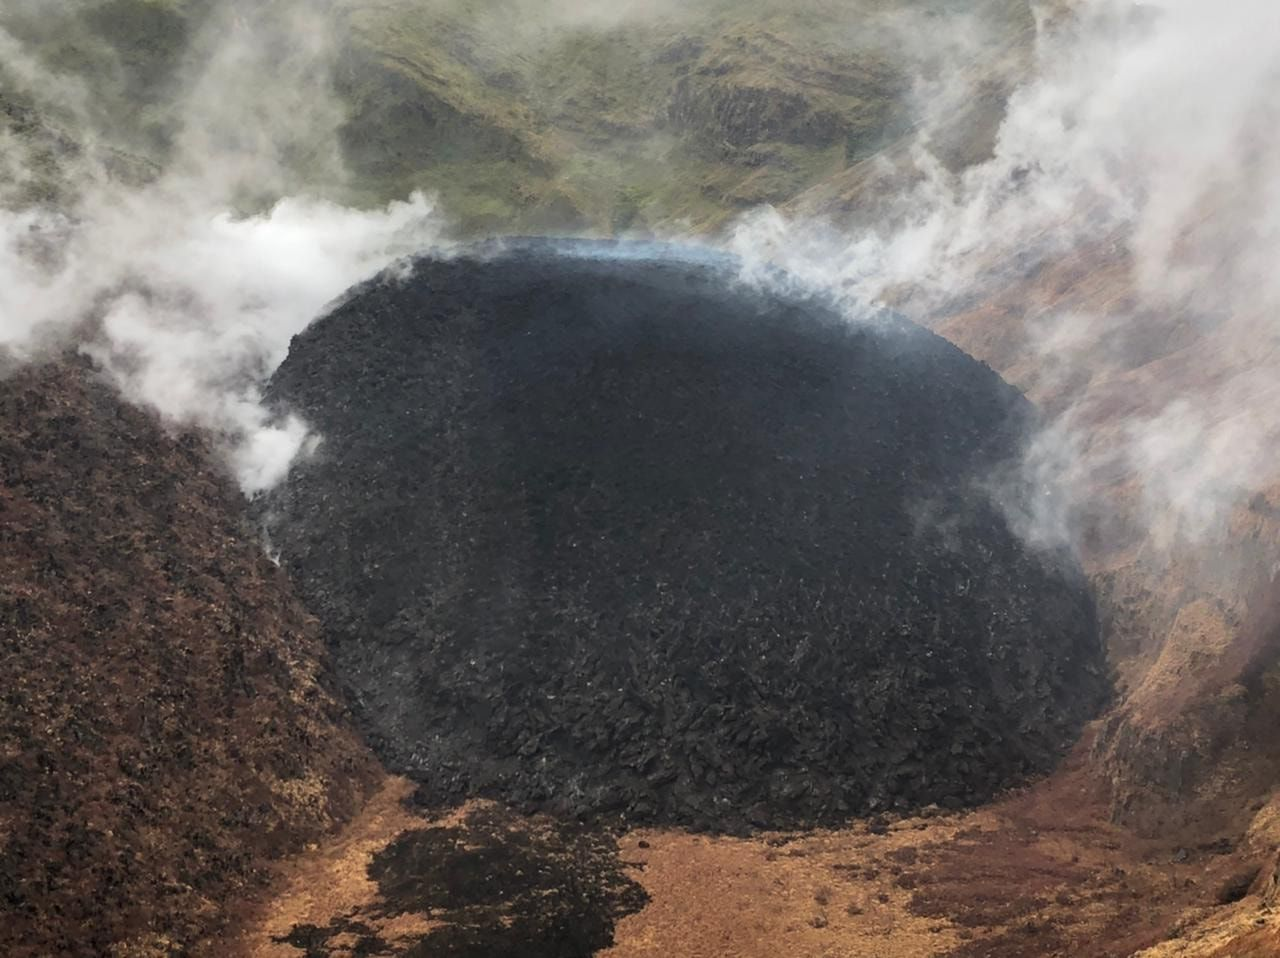 Soufrière de St Vincent - the fumaroles at the top of the new dome and in contact between the new and the old - photo NEMO 18.01.2021